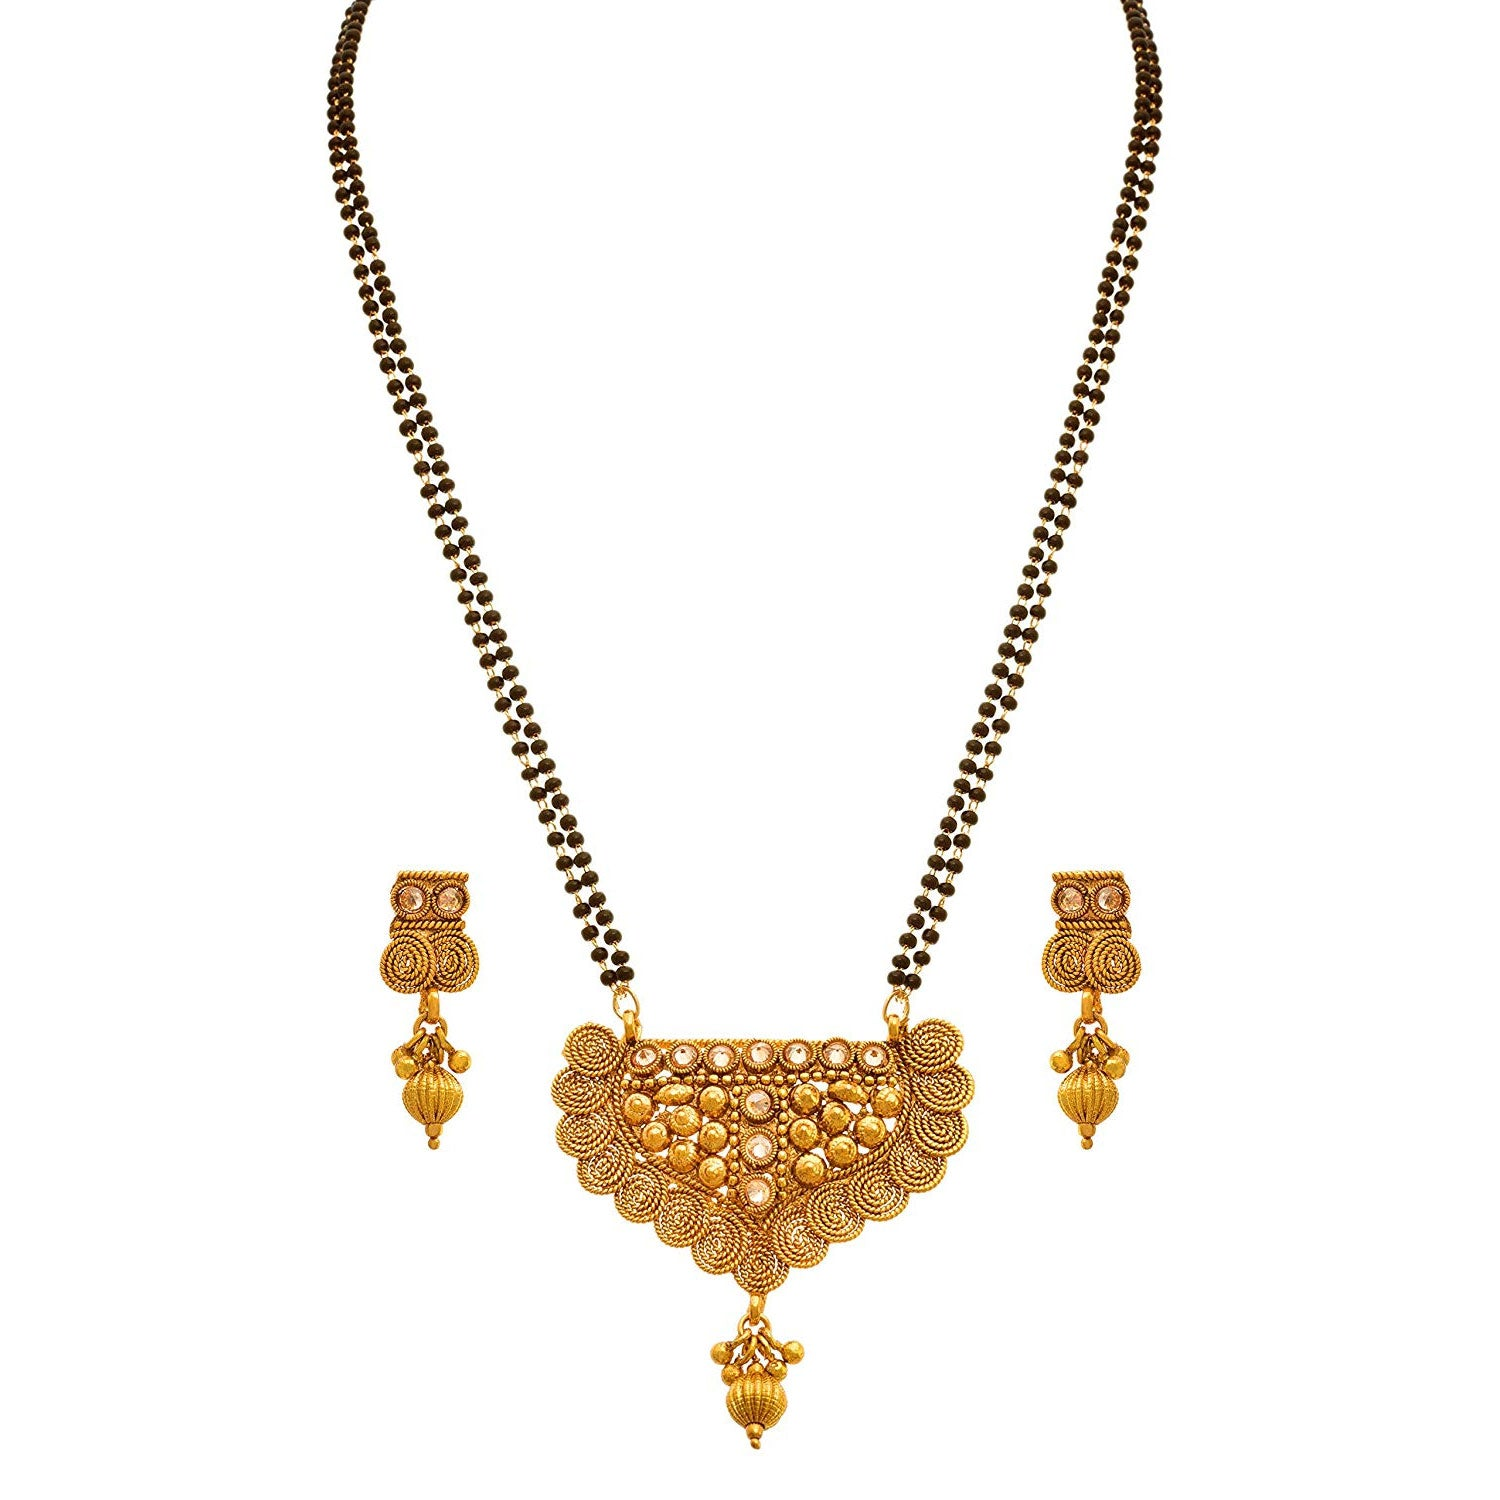 JFL - Jewellery For Less Traditional Ethnic One Gram Gold Plated Spiral Diamond Designer Mangalsutra Jewellery Set With Earring For Women.